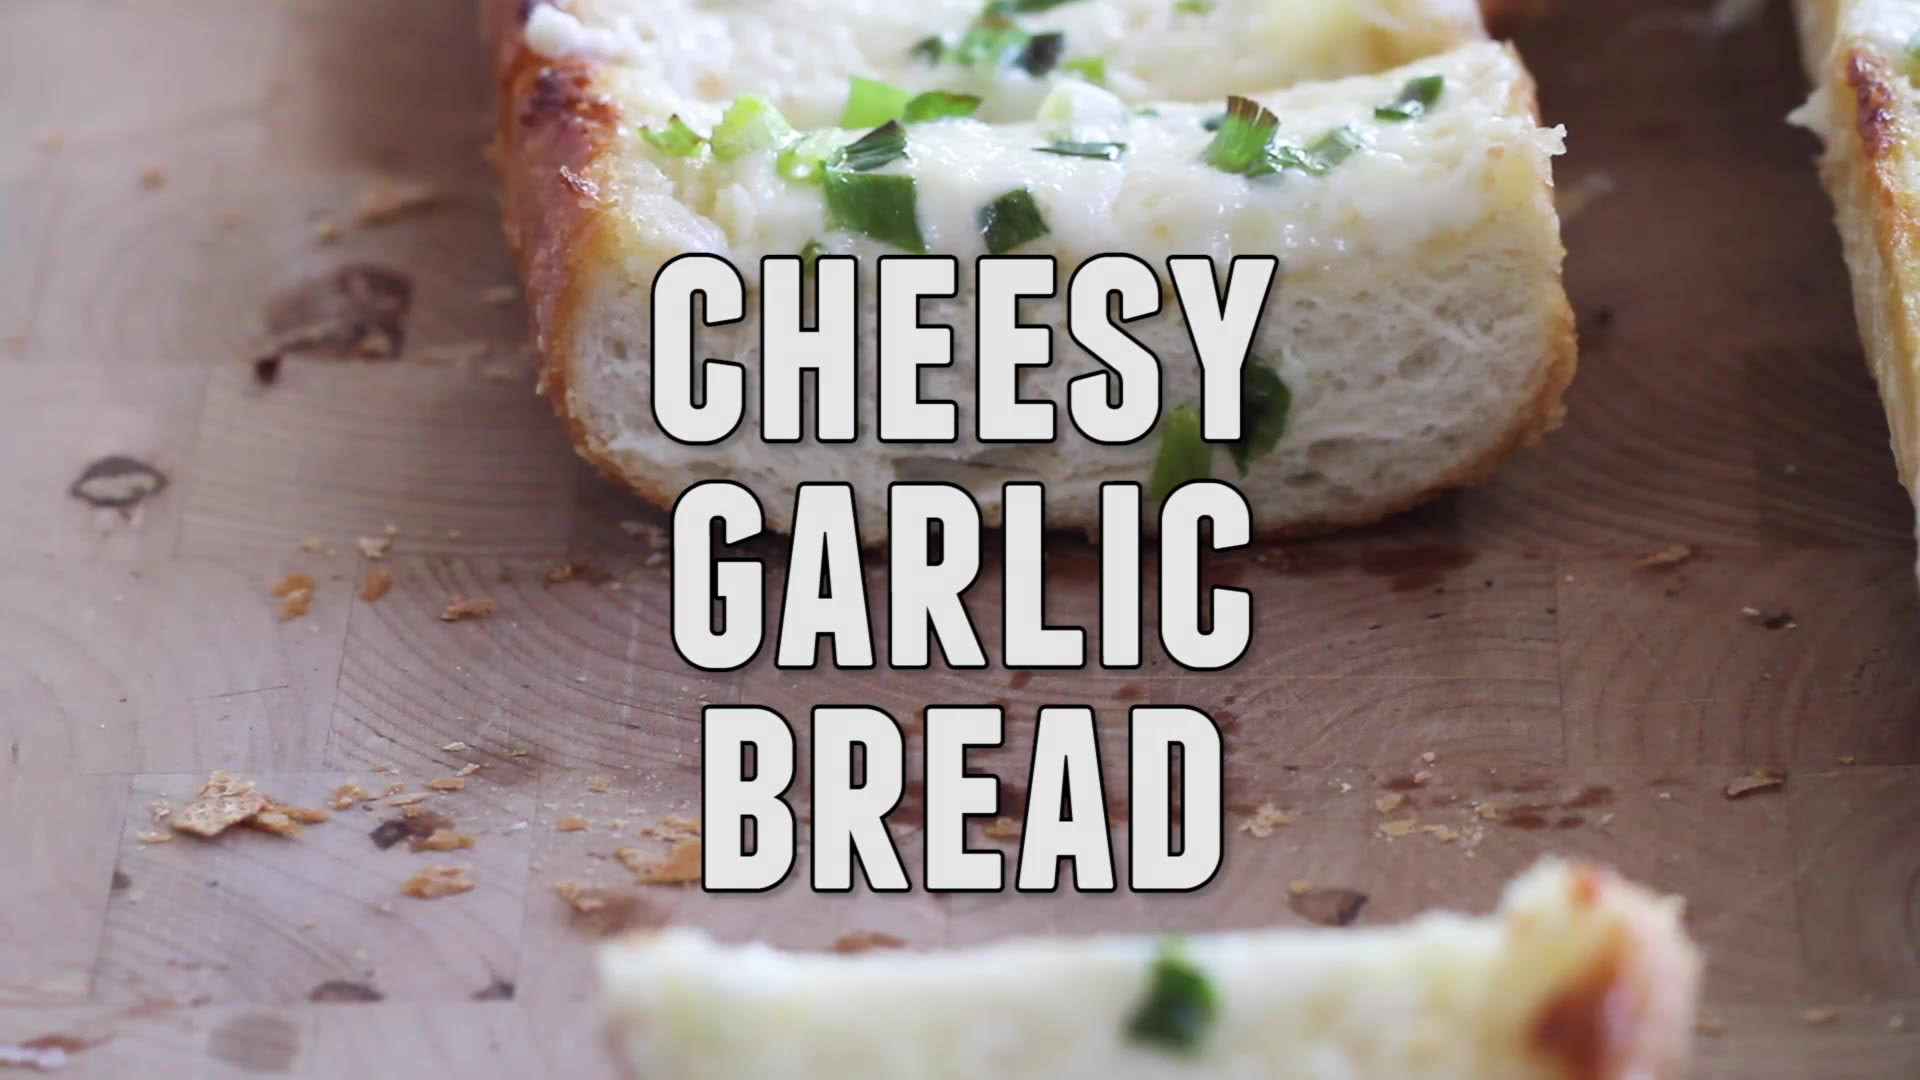 can garlic bread give you food poisoning